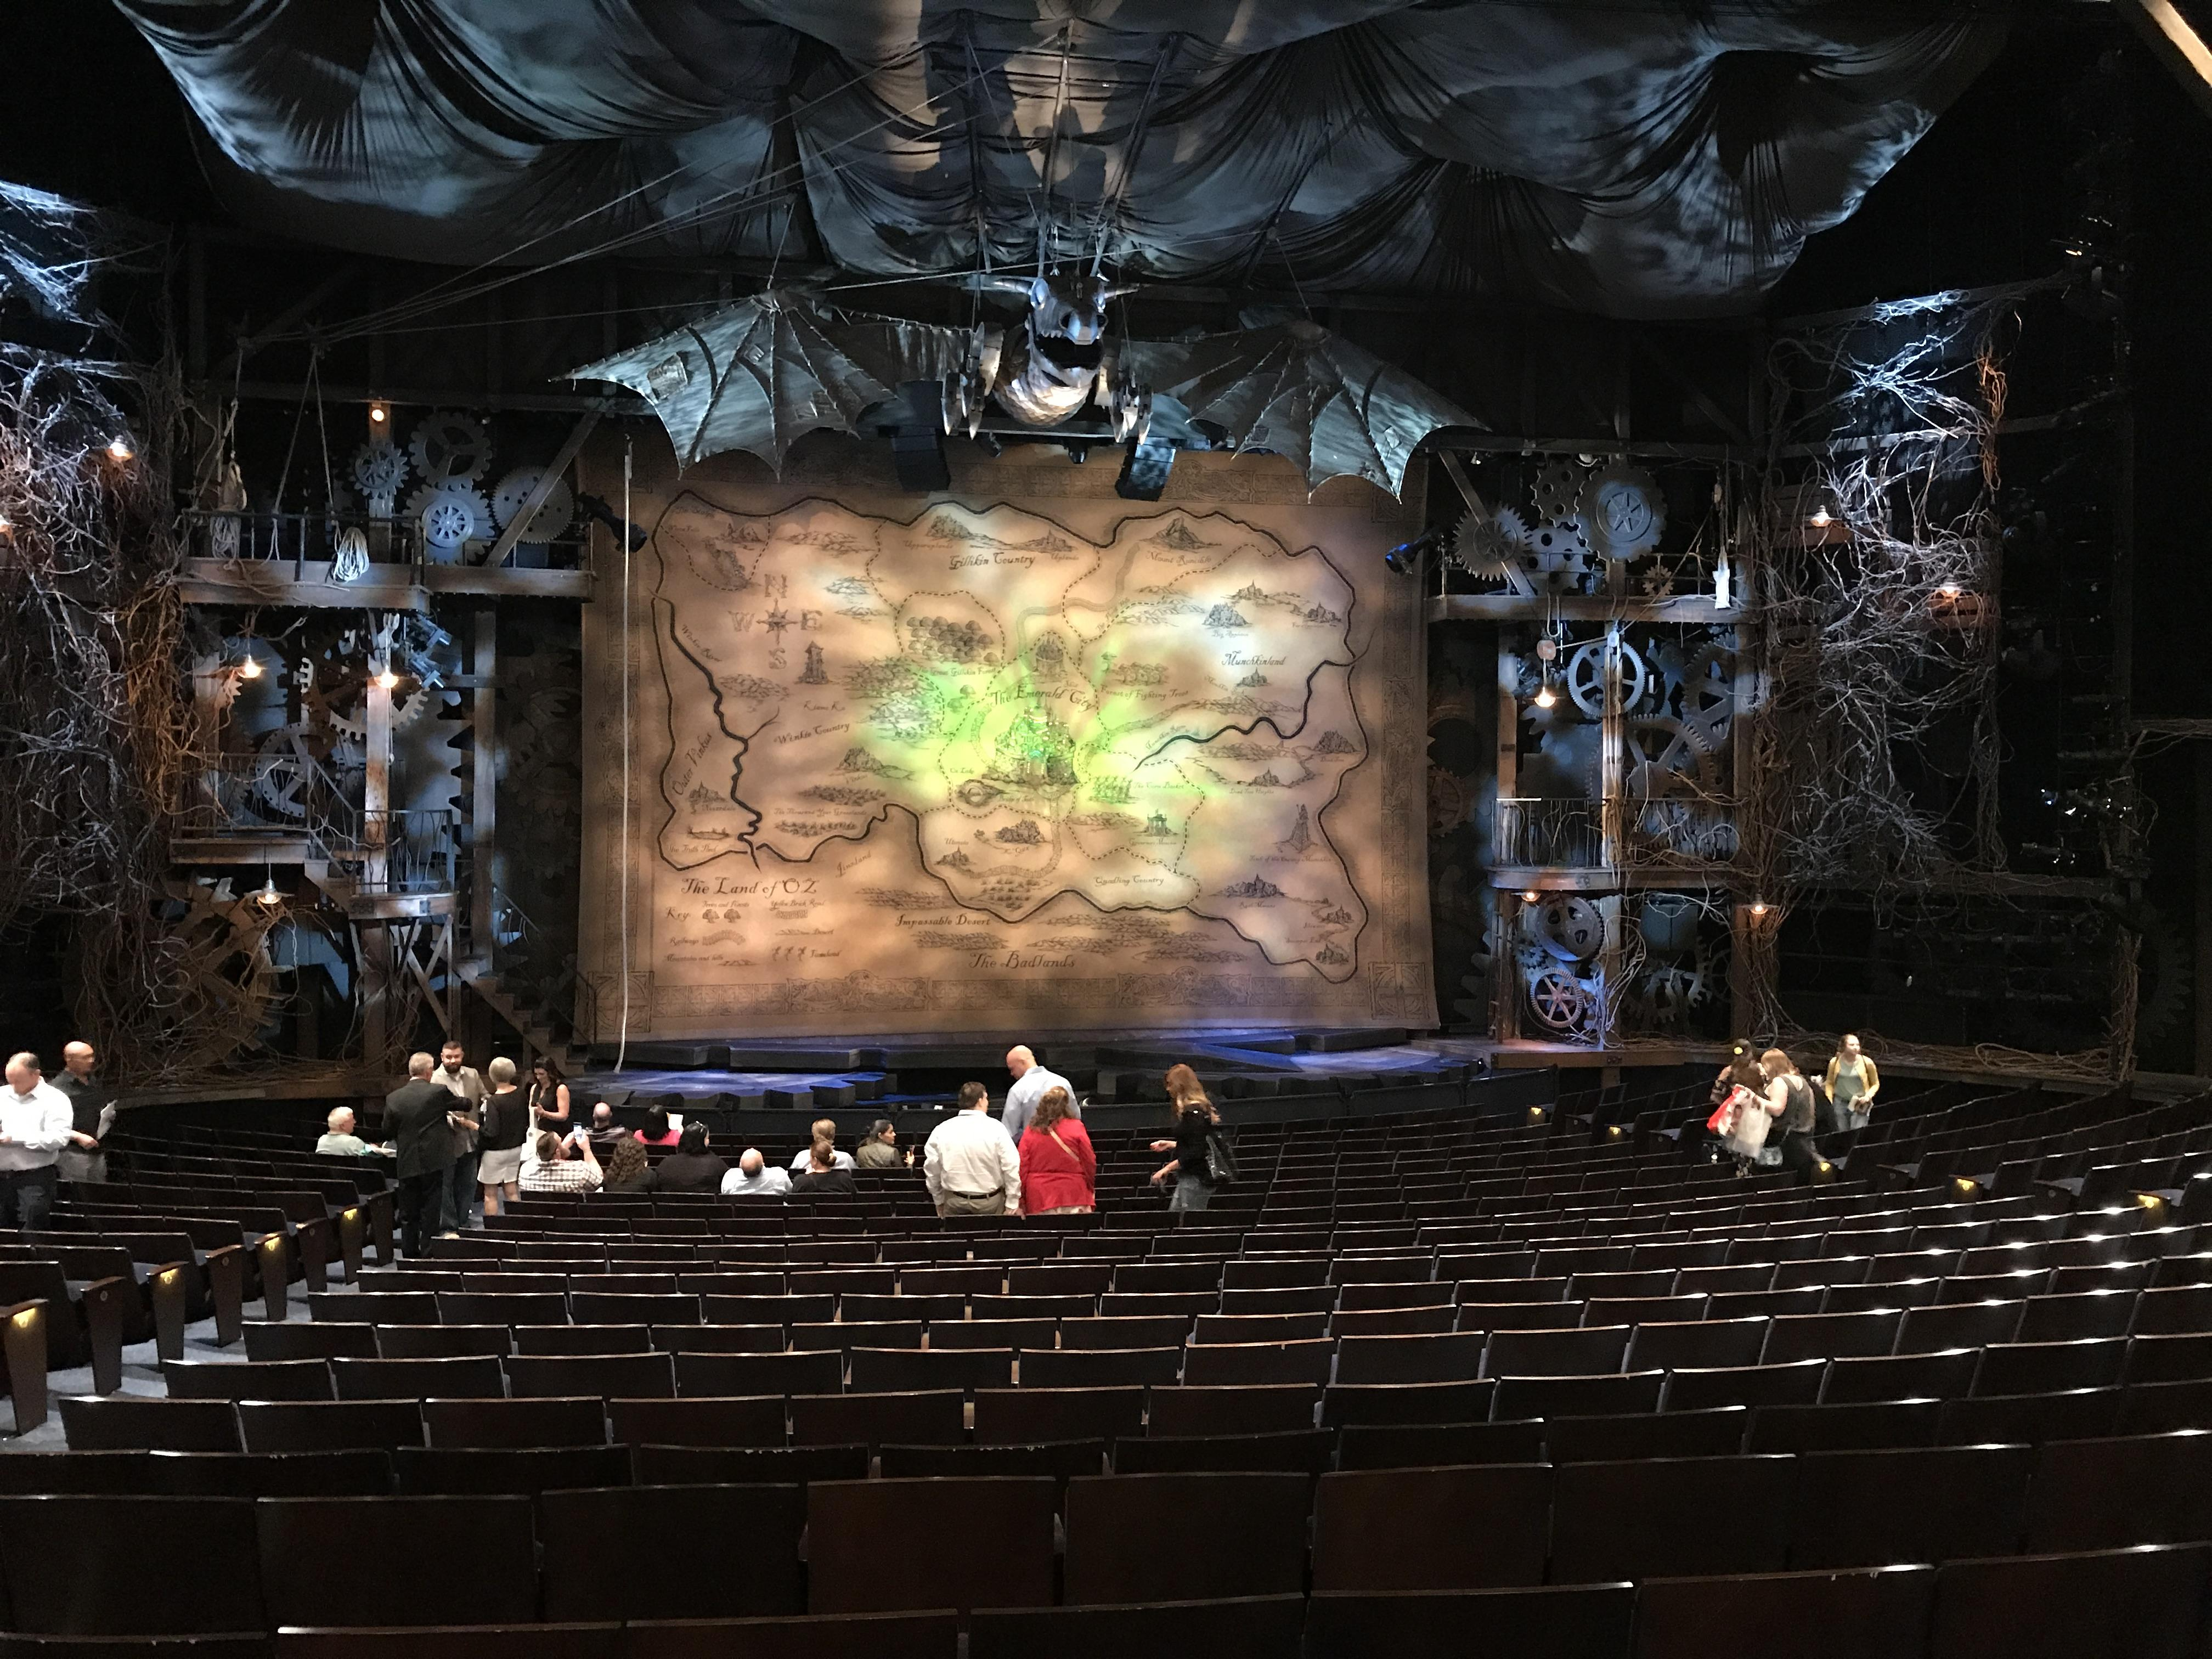 Gershwin Theatre Section Orchestra C Row T Seat 103-104